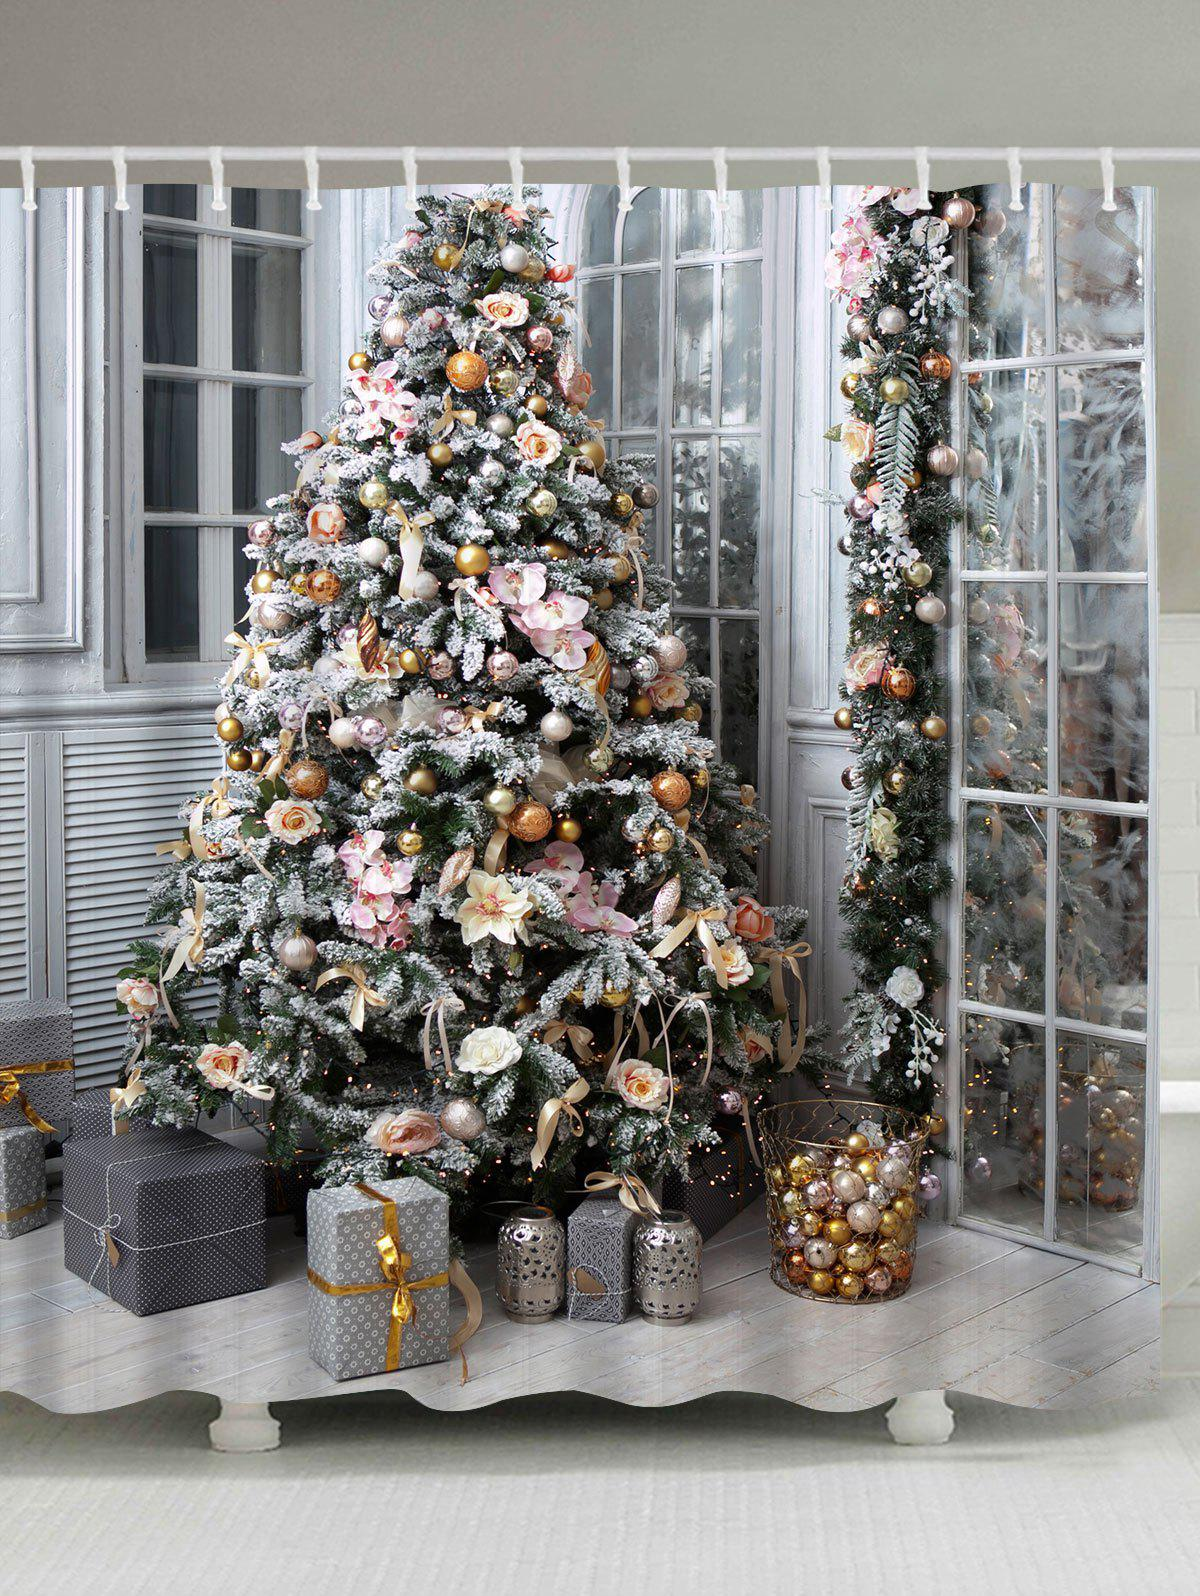 Christmas Tree Gift Printed Waterproof Bath CurtainHOME<br><br>Size: W71 INCH * L71 INCH; Color: COLORMIX; Products Type: Shower Curtains; Materials: Polyester; Pattern: Christmas Tree,Gift; Style: Festival; Number of Hook Holes: W59 inch*L71 inch: 10; W71 inch*L71 inch: 12; W71 inch*L79 inch: 12; Package Contents: 1 x Shower Curtain 1 x Hooks (Set);